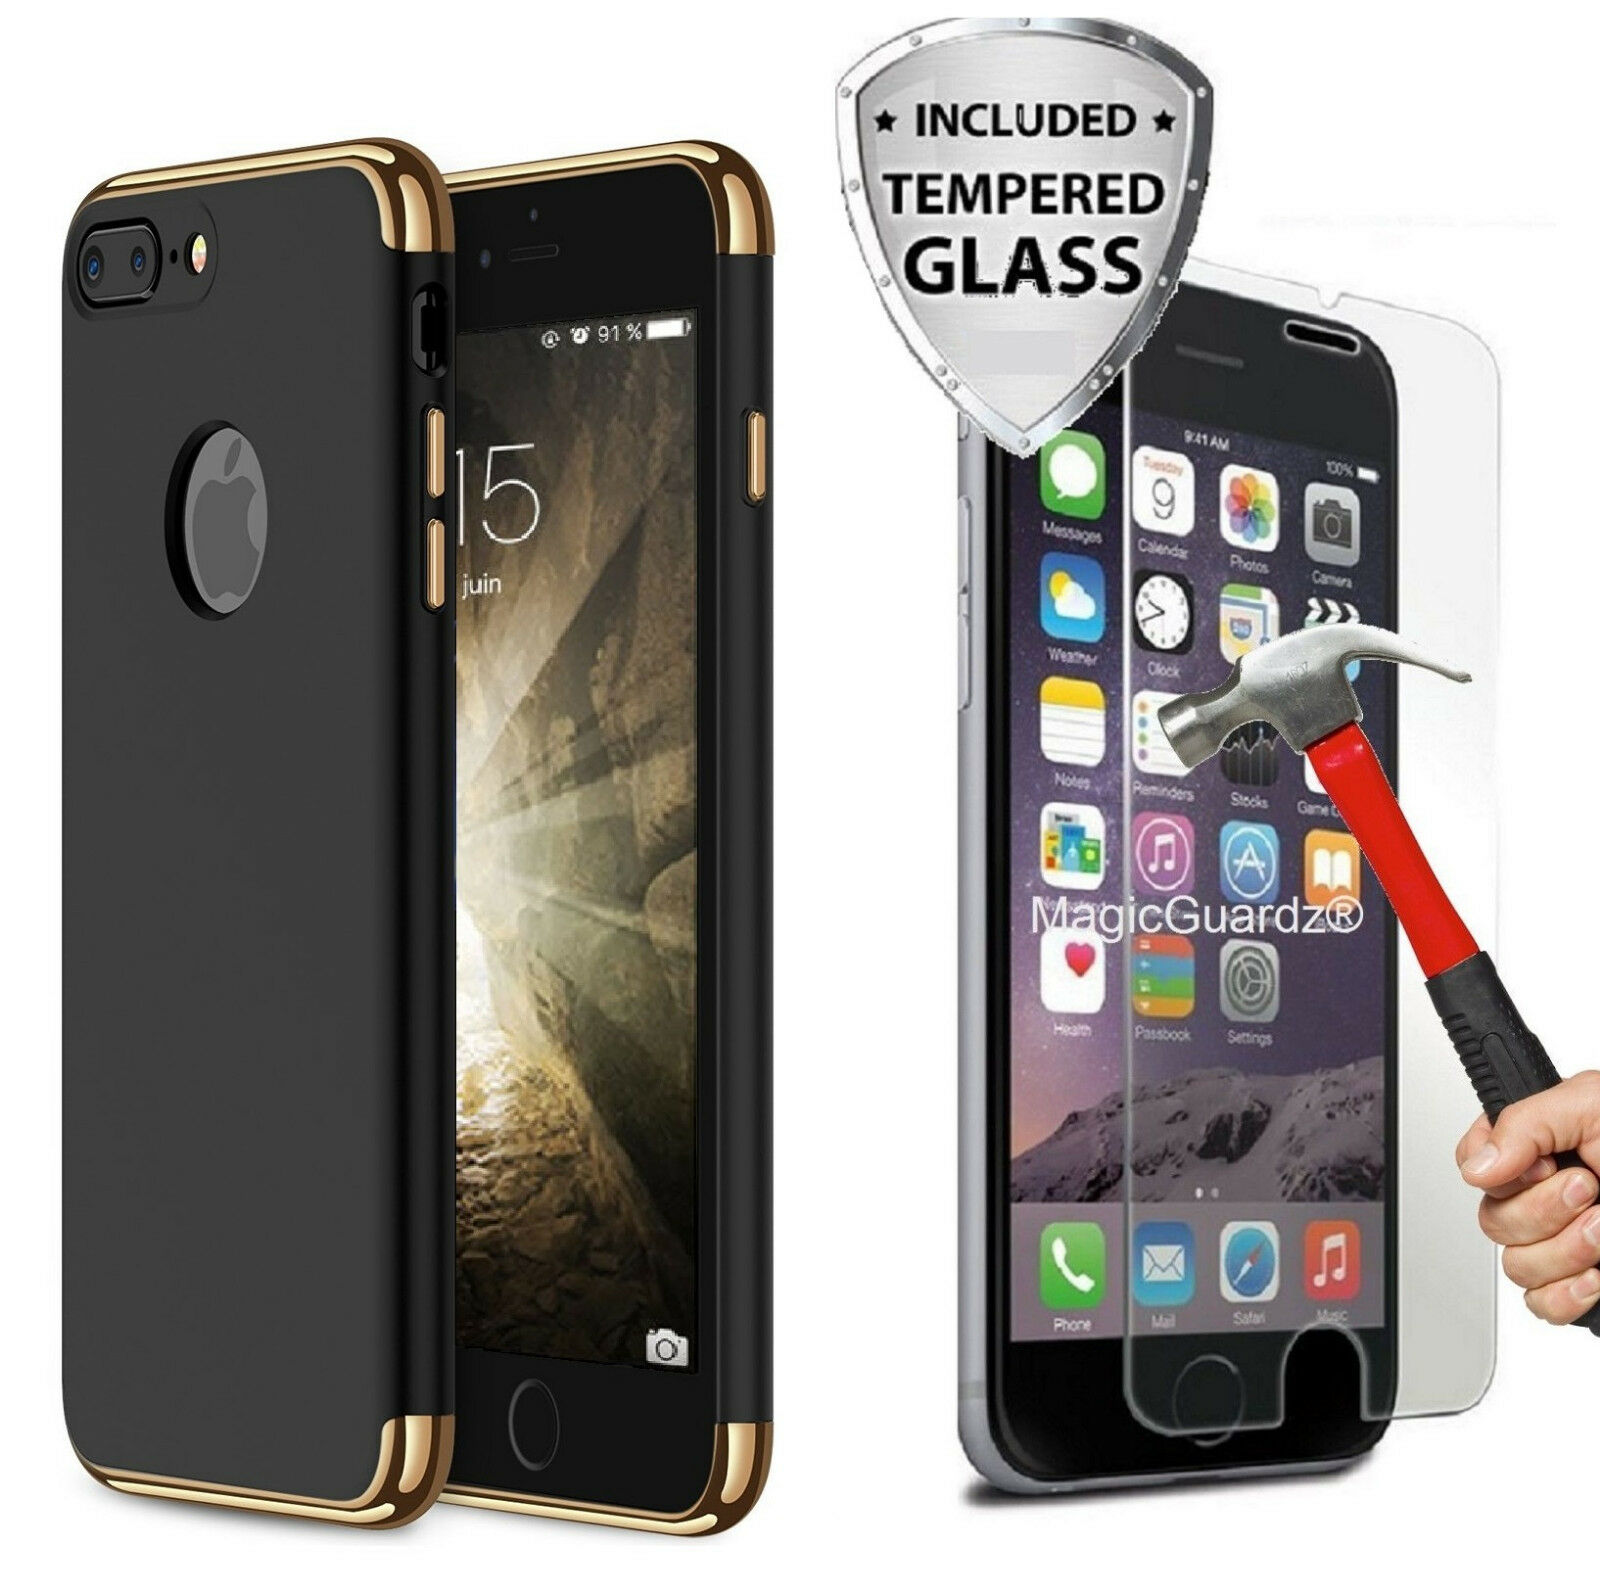 Protective Hard Thin Case Cover + Tempered Glass For Apple iPhone 6 6s 7 8 Plus